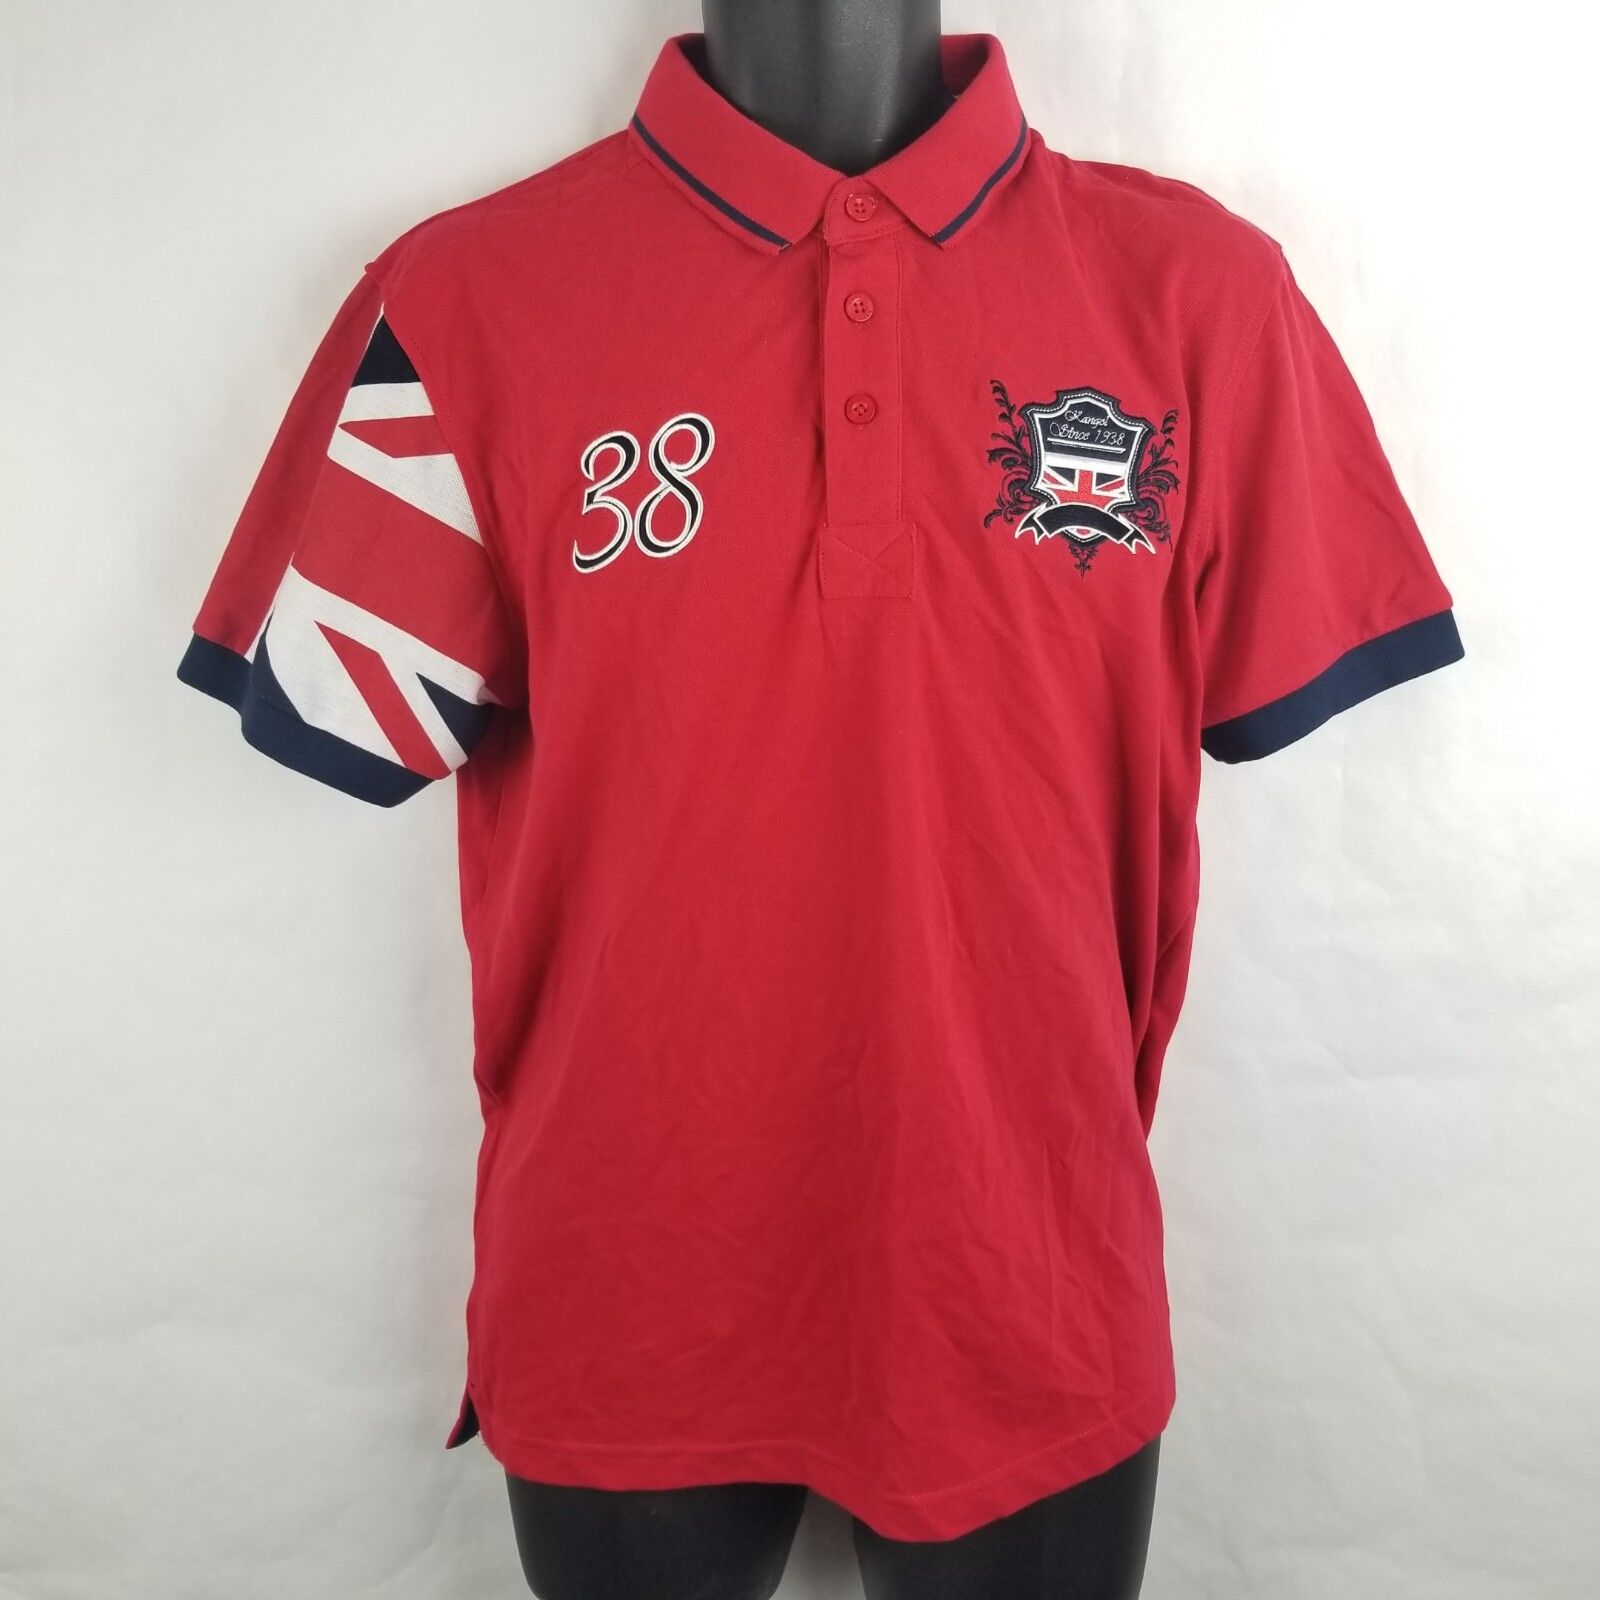 3af8aae3d NWT Kangol Flag Polo Shirt British Red Medium I6 Rugby ntrsyn3902 ...